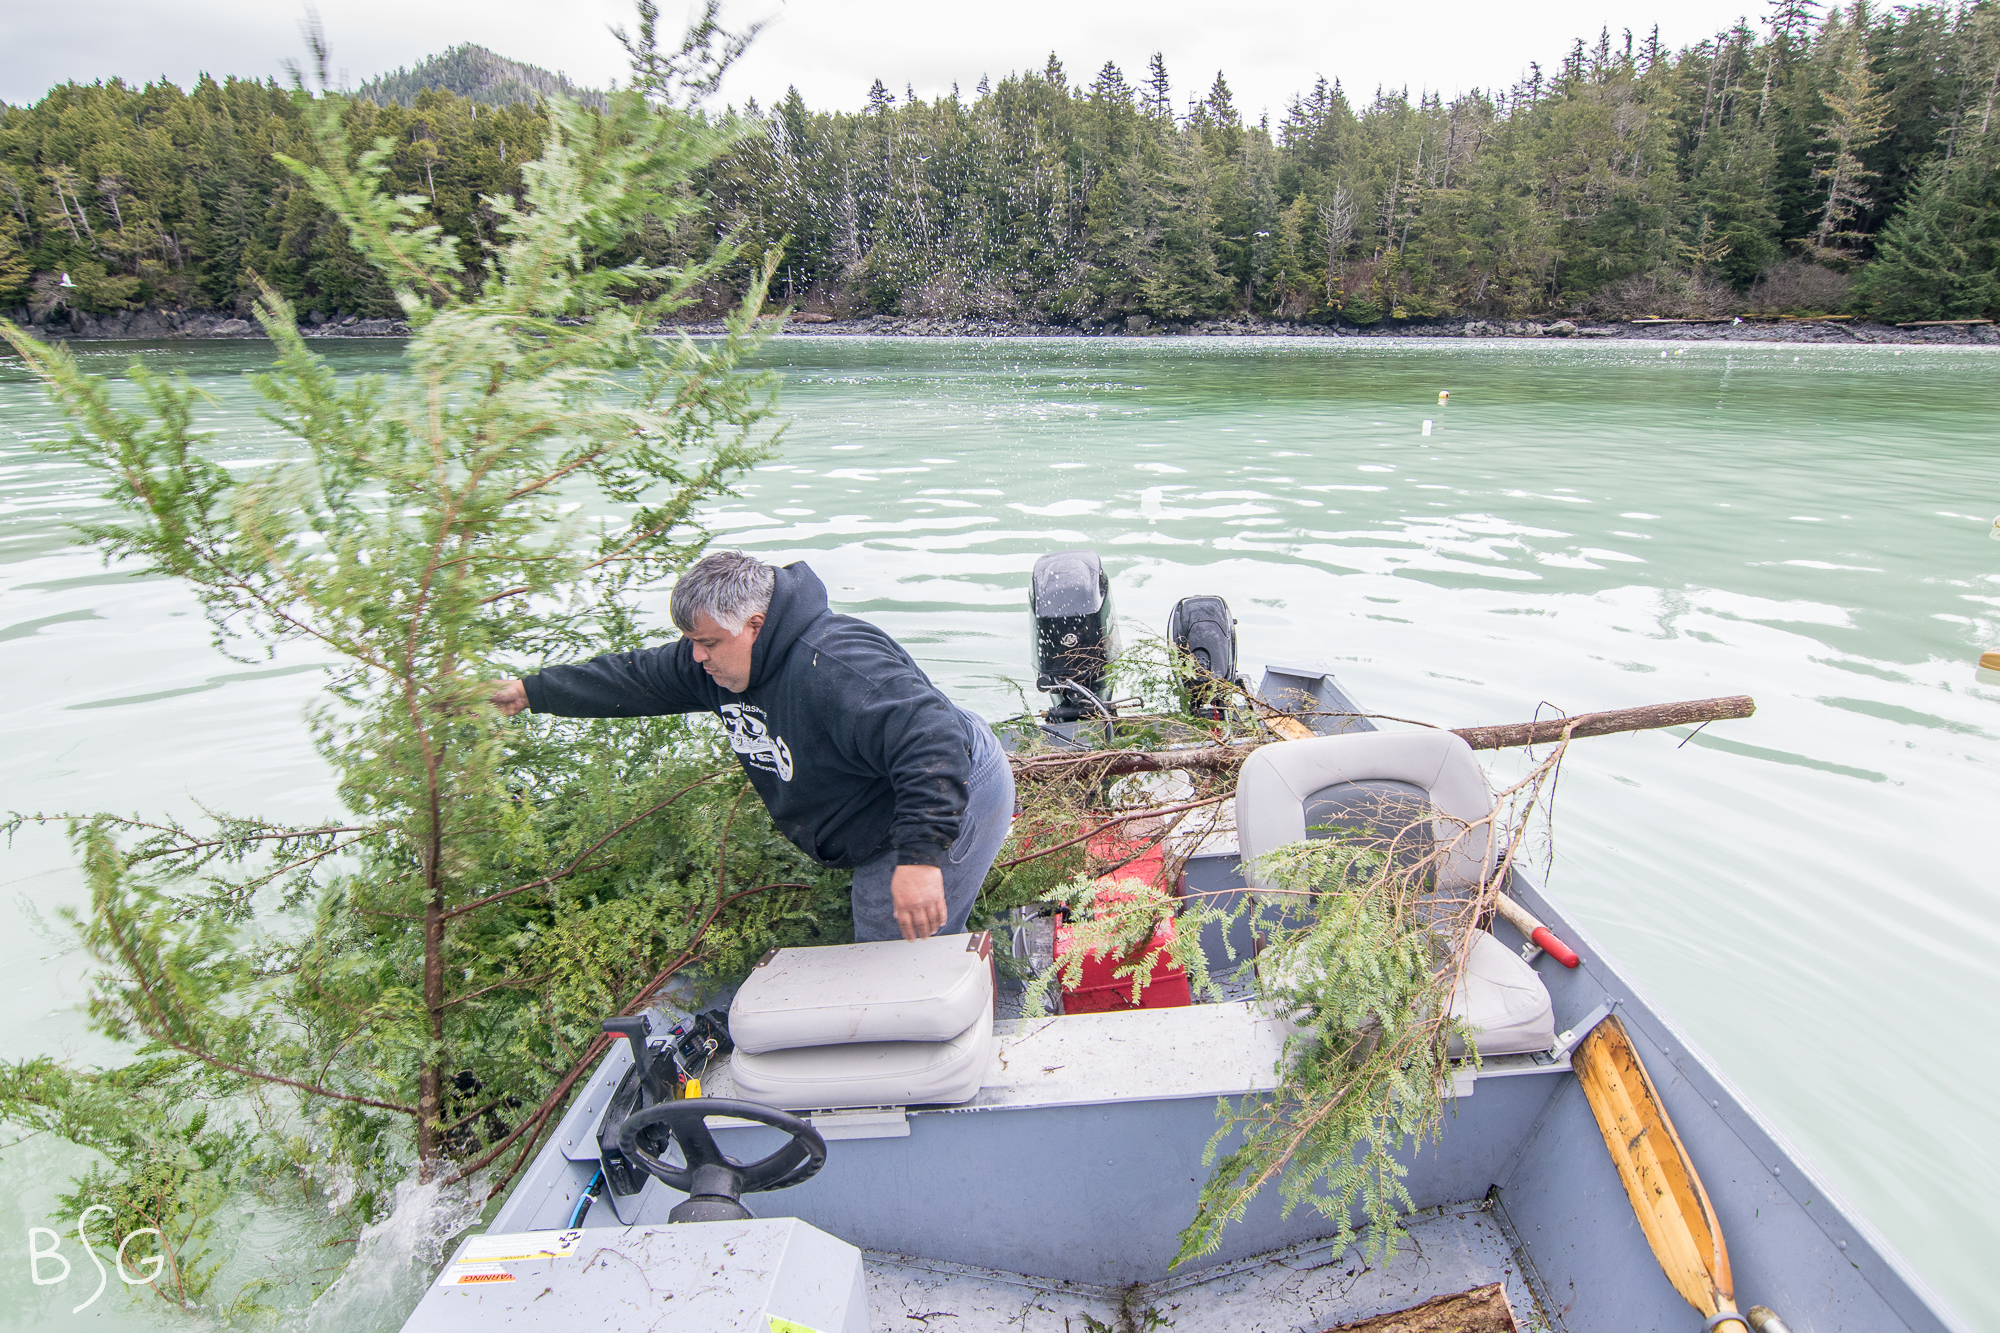 Wade Martin anchors hemlock branches into a cove, thick and foamy with herring spawn. Branches are left for days until the water clears and they are pulled to reveal a thick coating of fresh delicious herring spawn. The fish are left unharmed.